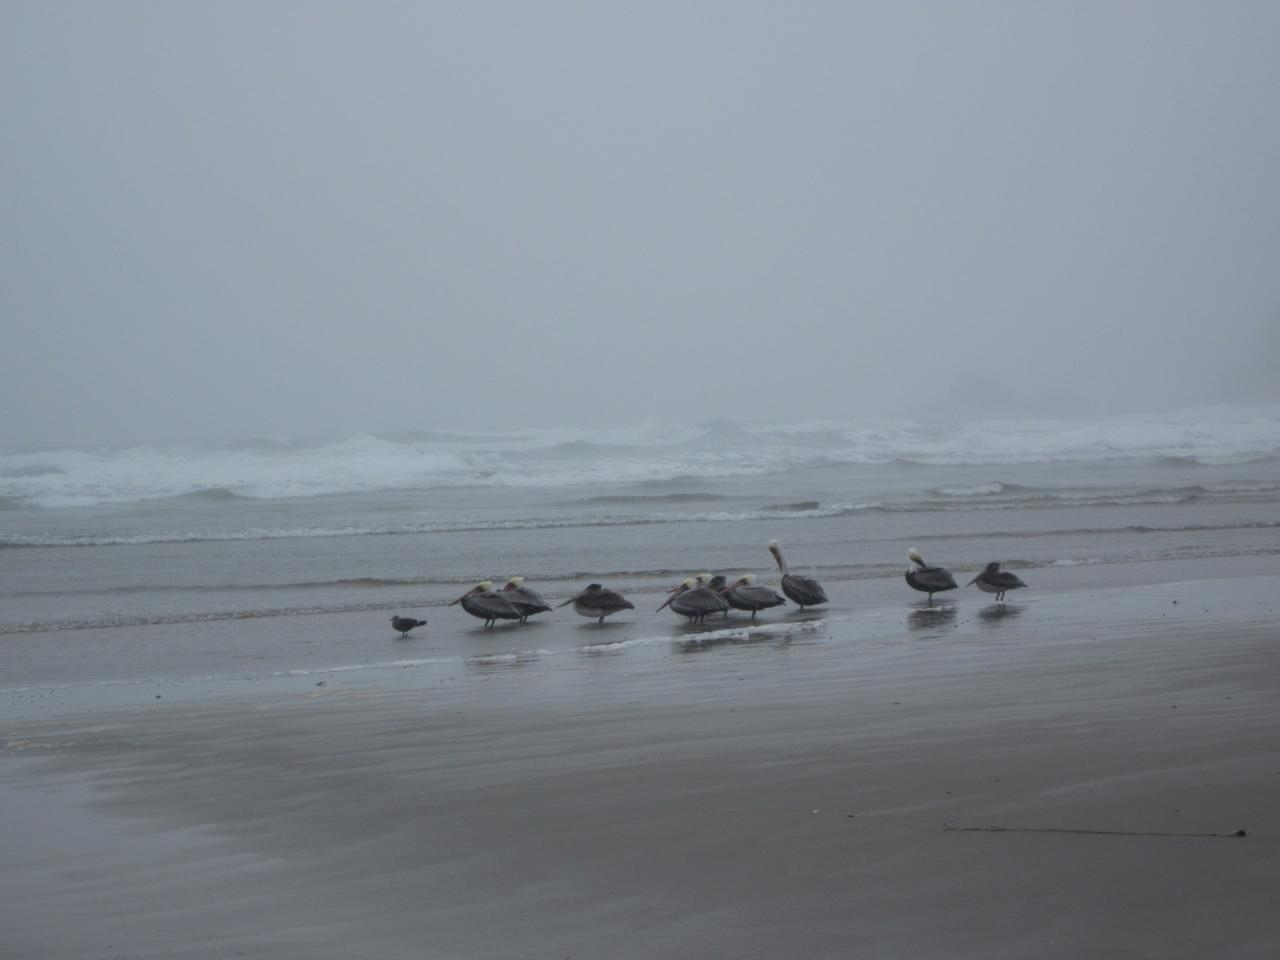 This group of about a dozen brown pelicans was standing on the beach near the surf line, a behavior noticed in previous years just before they fly south for the winter.